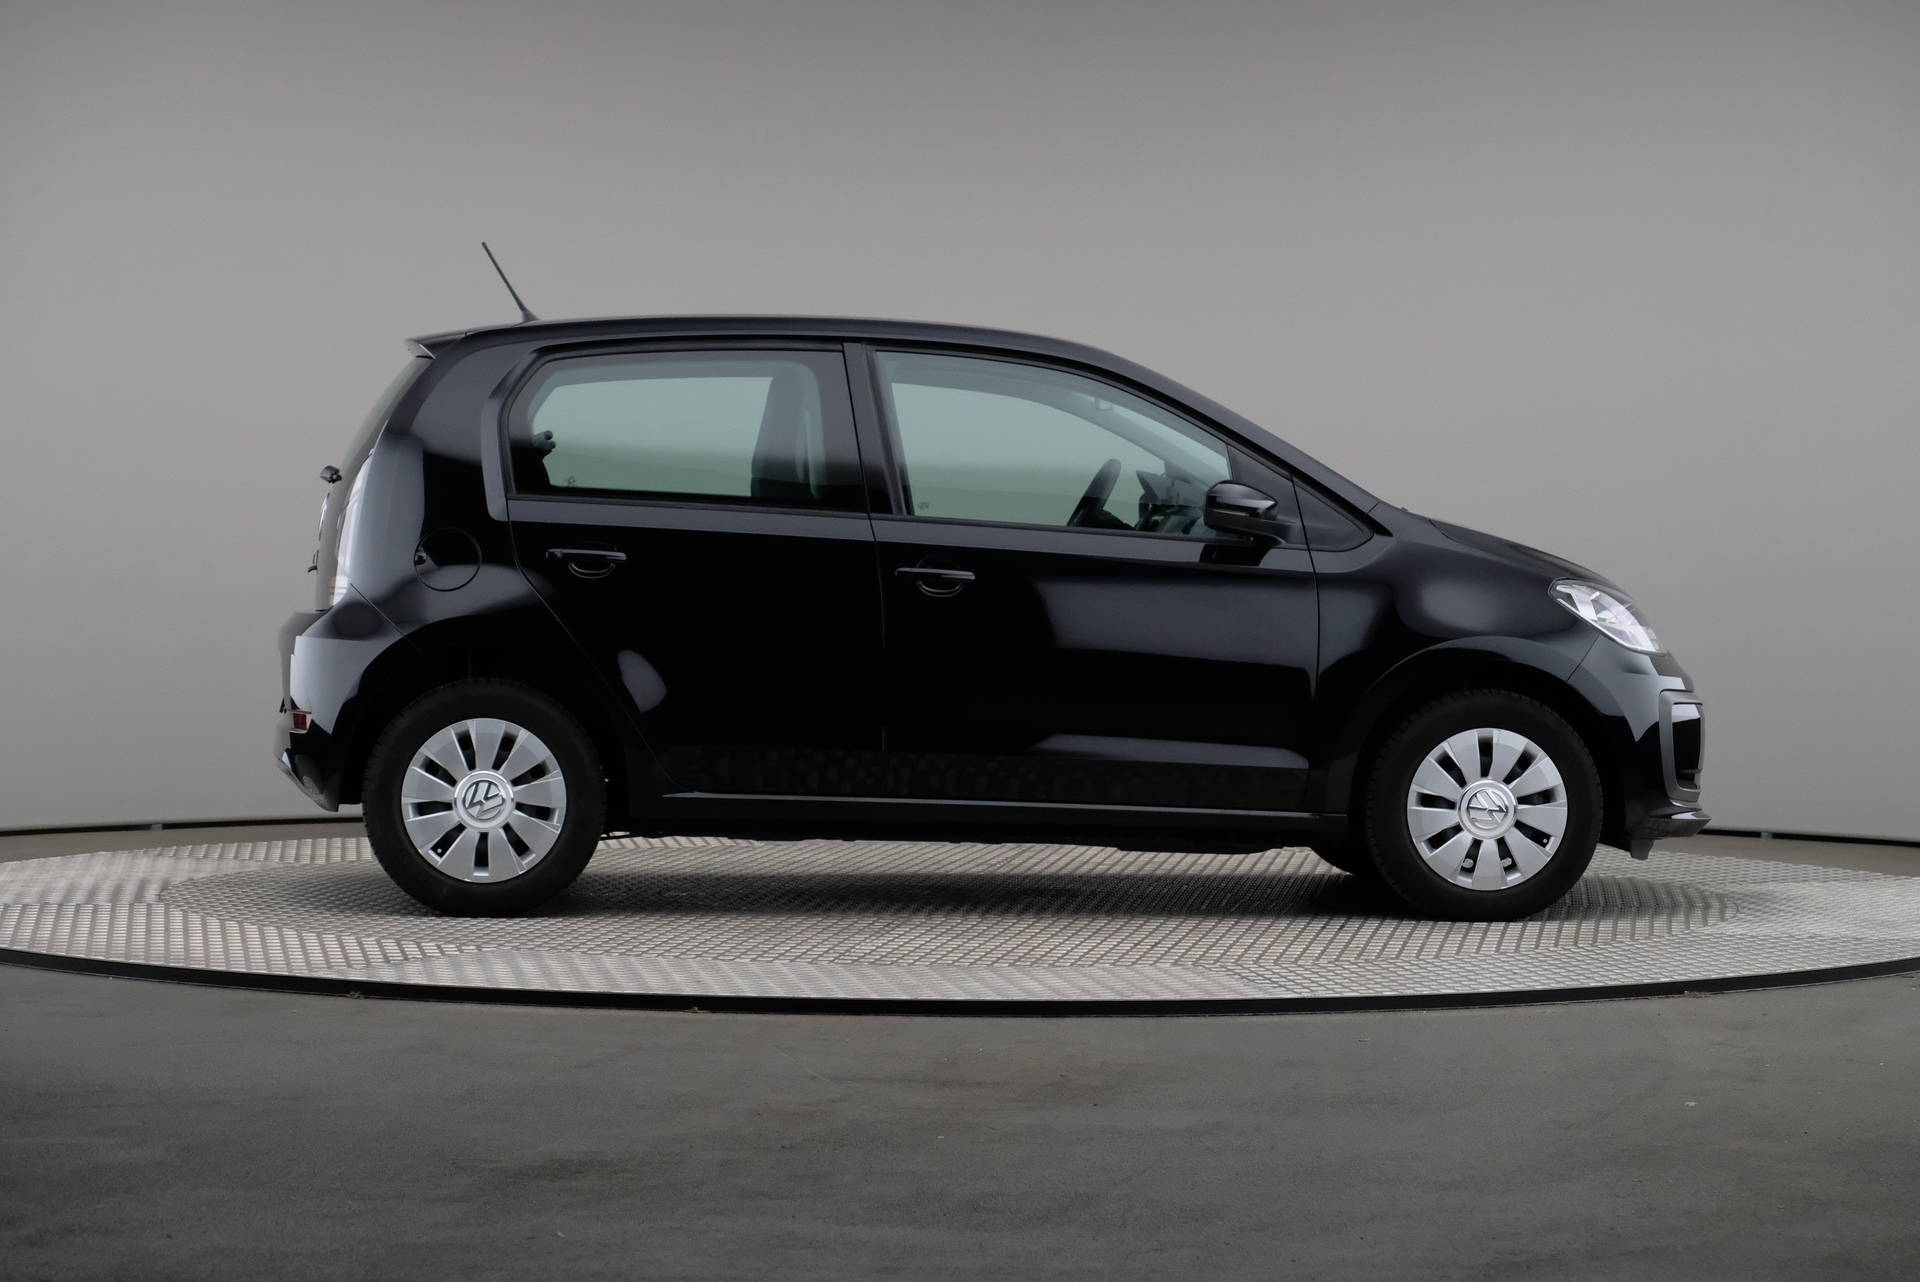 Volkswagen up! 1.0 44kW Move up! BlueMotion Technology, Airconditioning, 360-image23